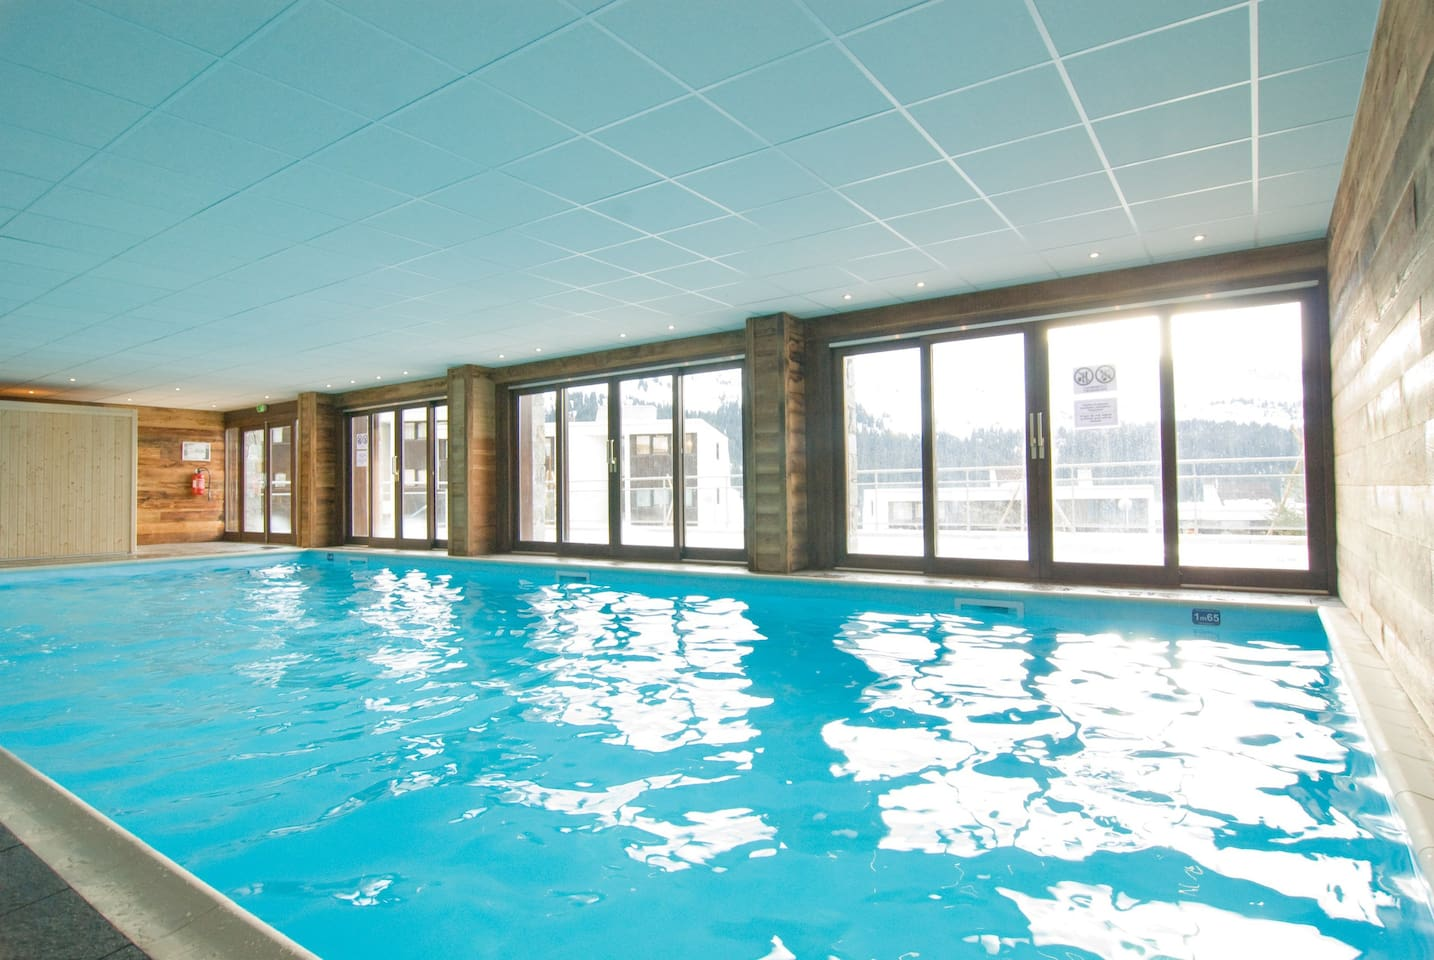 Go for a swim in the indoor pool.